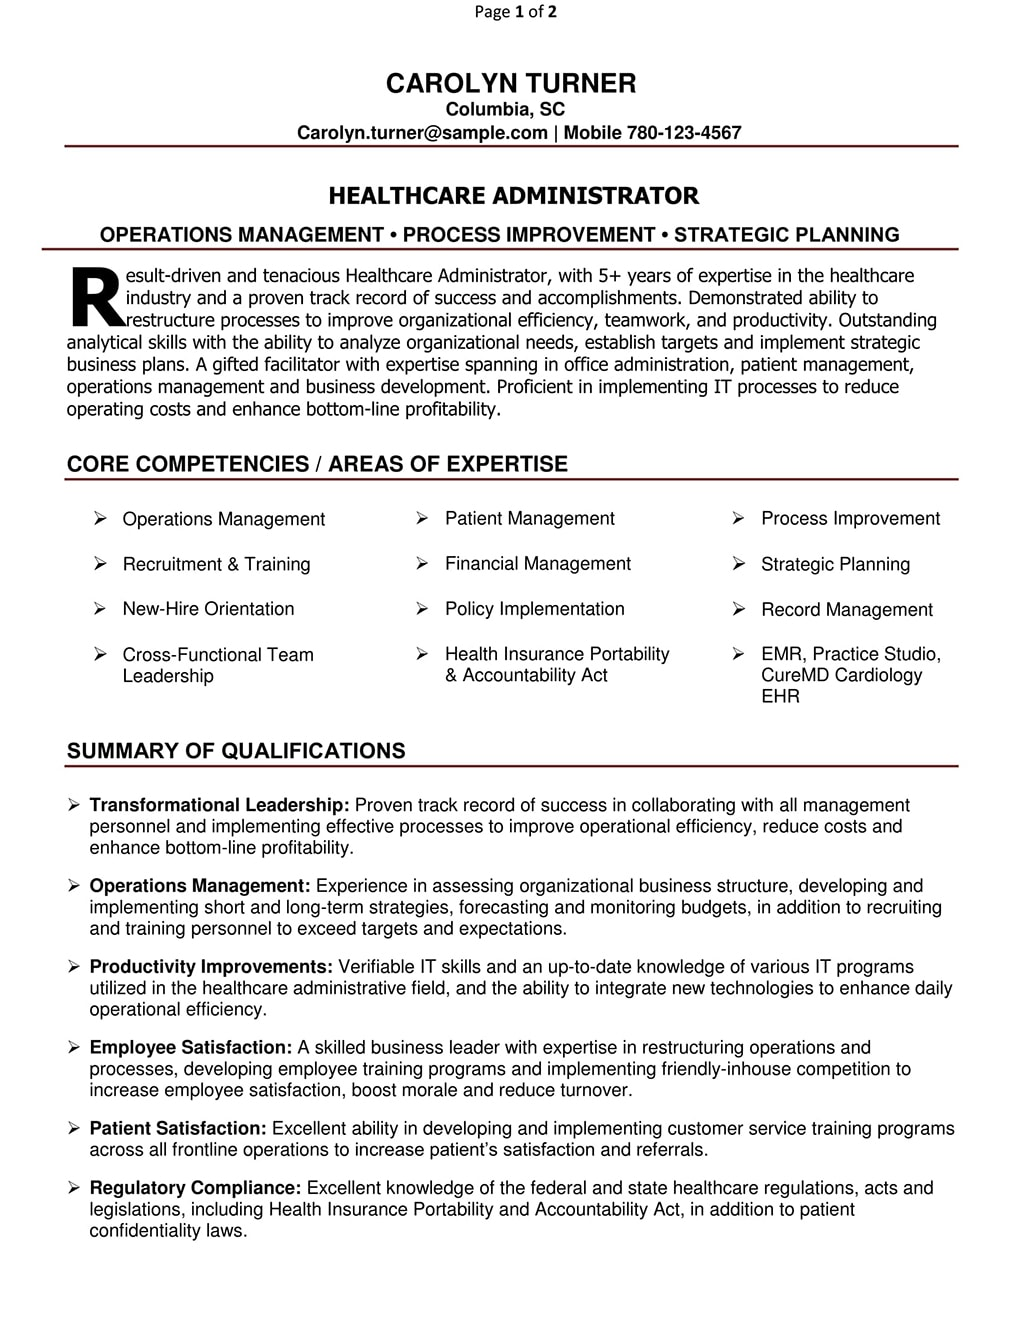 to advertise resume writing service my services edmonton samples min family practice Resume Advertise Resume Writing Services